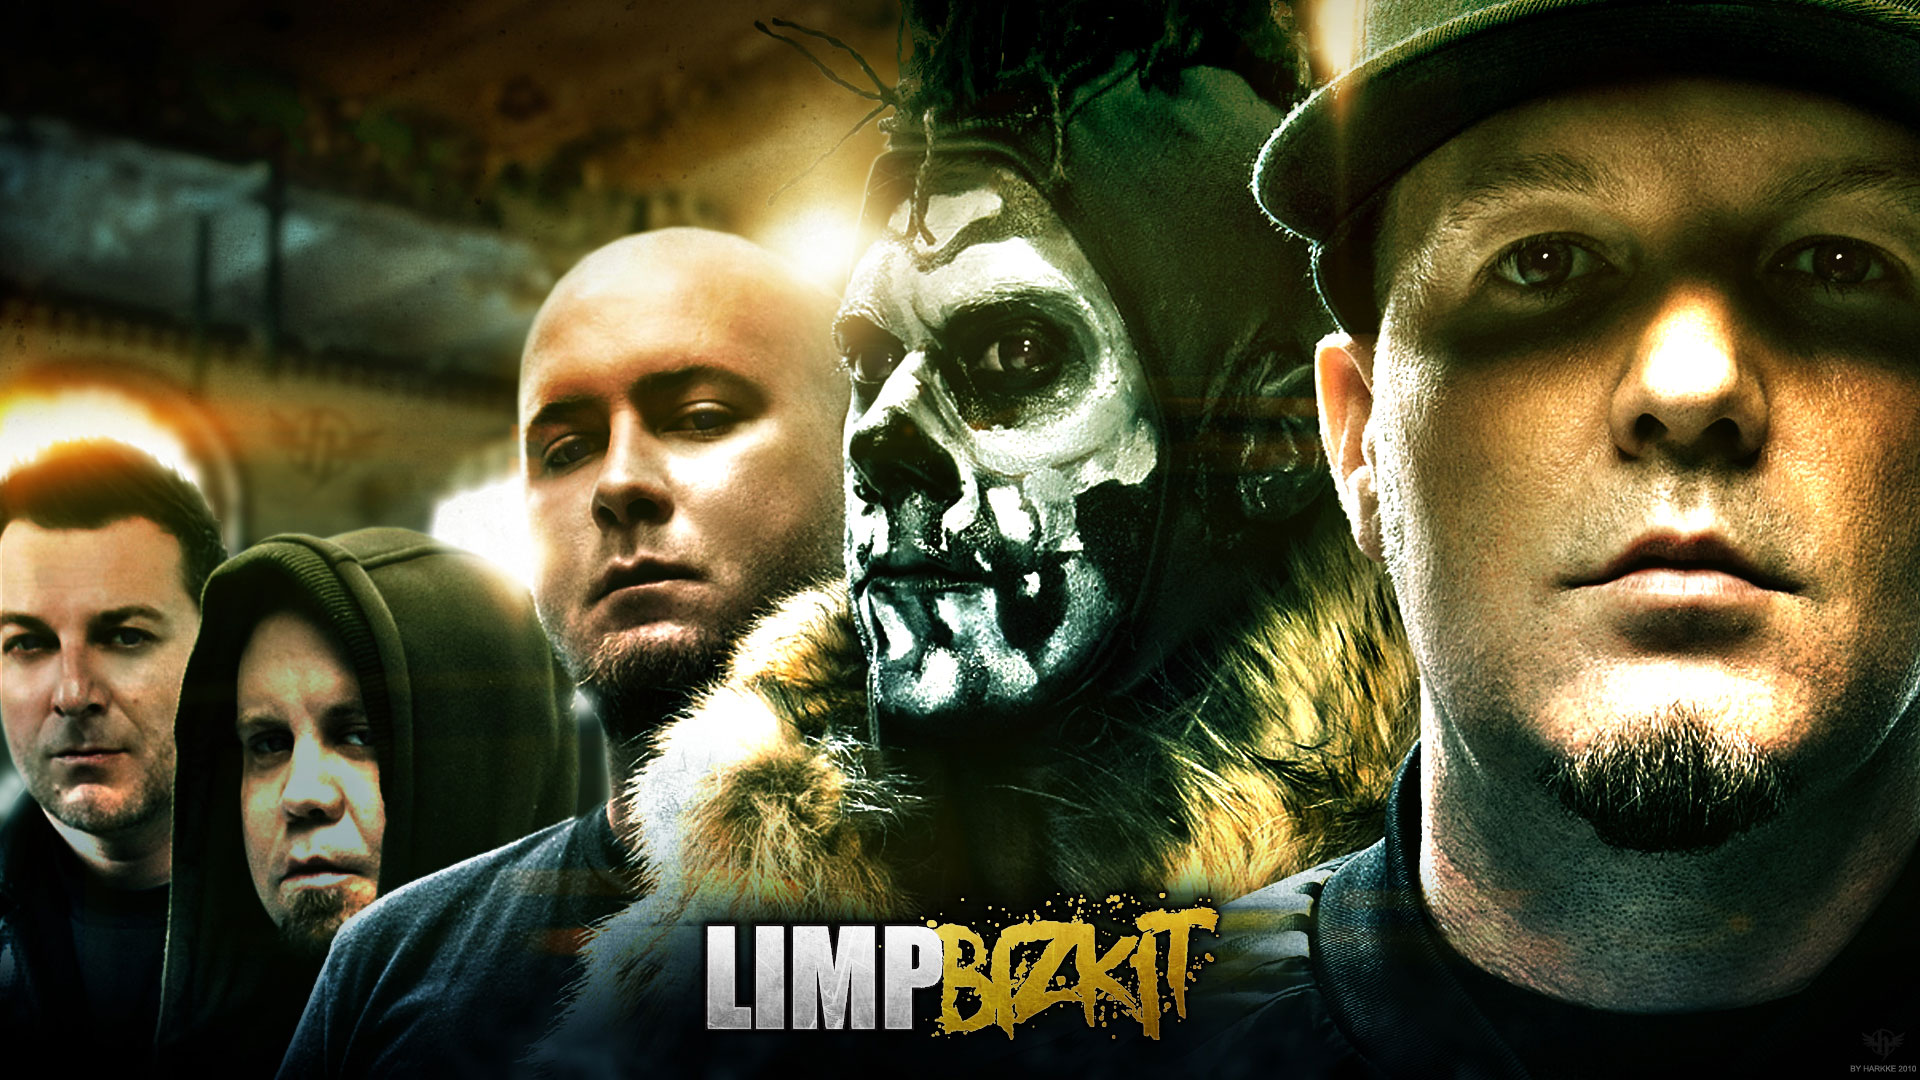 High Resolution Wallpaper | Limp Bizkit 1920x1080 px